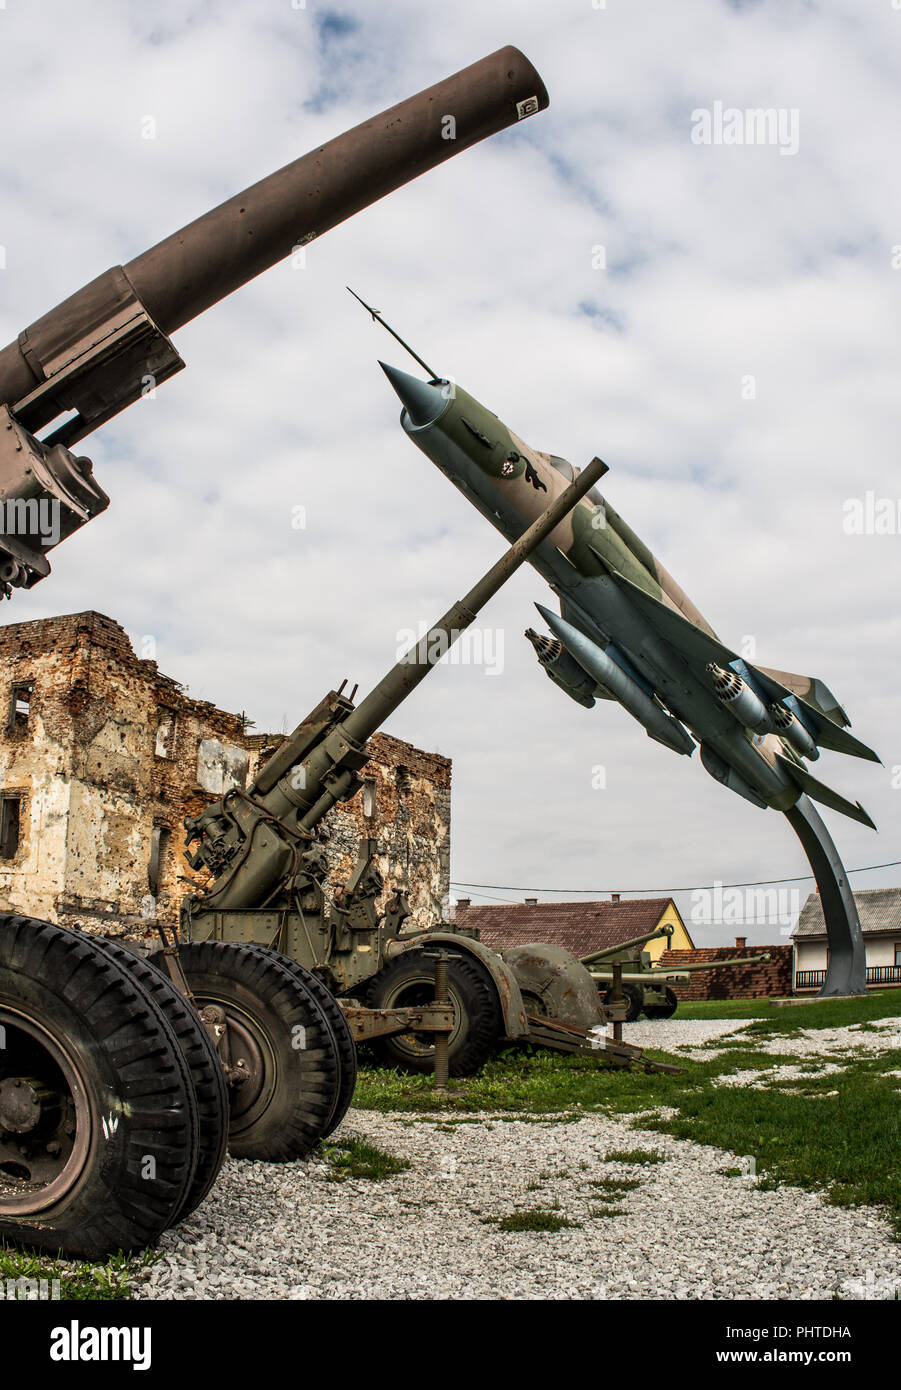 Open air military museum in Turanj, Croatia Stock Photo